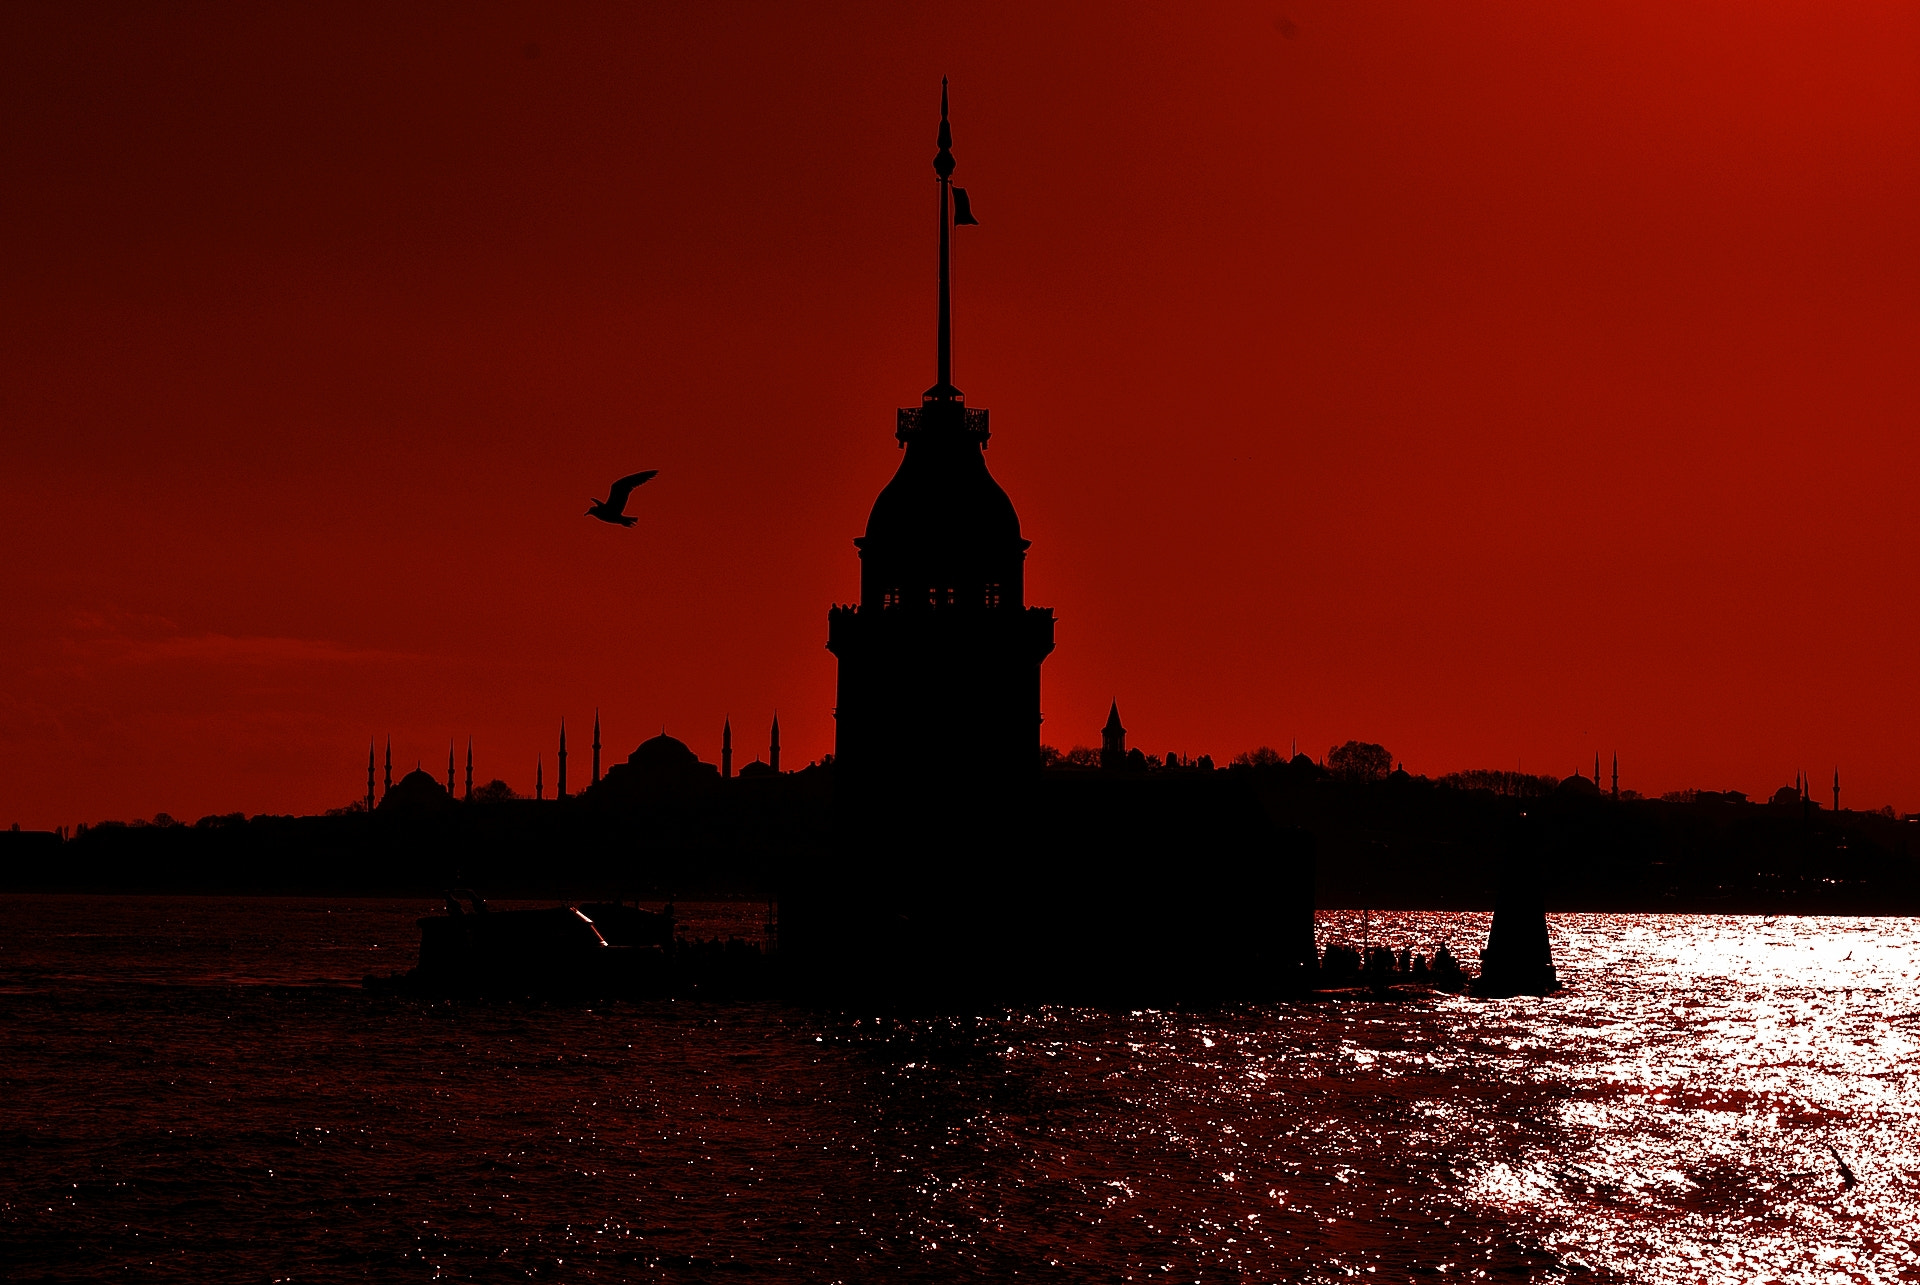 Photograph Maiden's Tower Üsküdar by Ayhan ÇAKAR on 500px